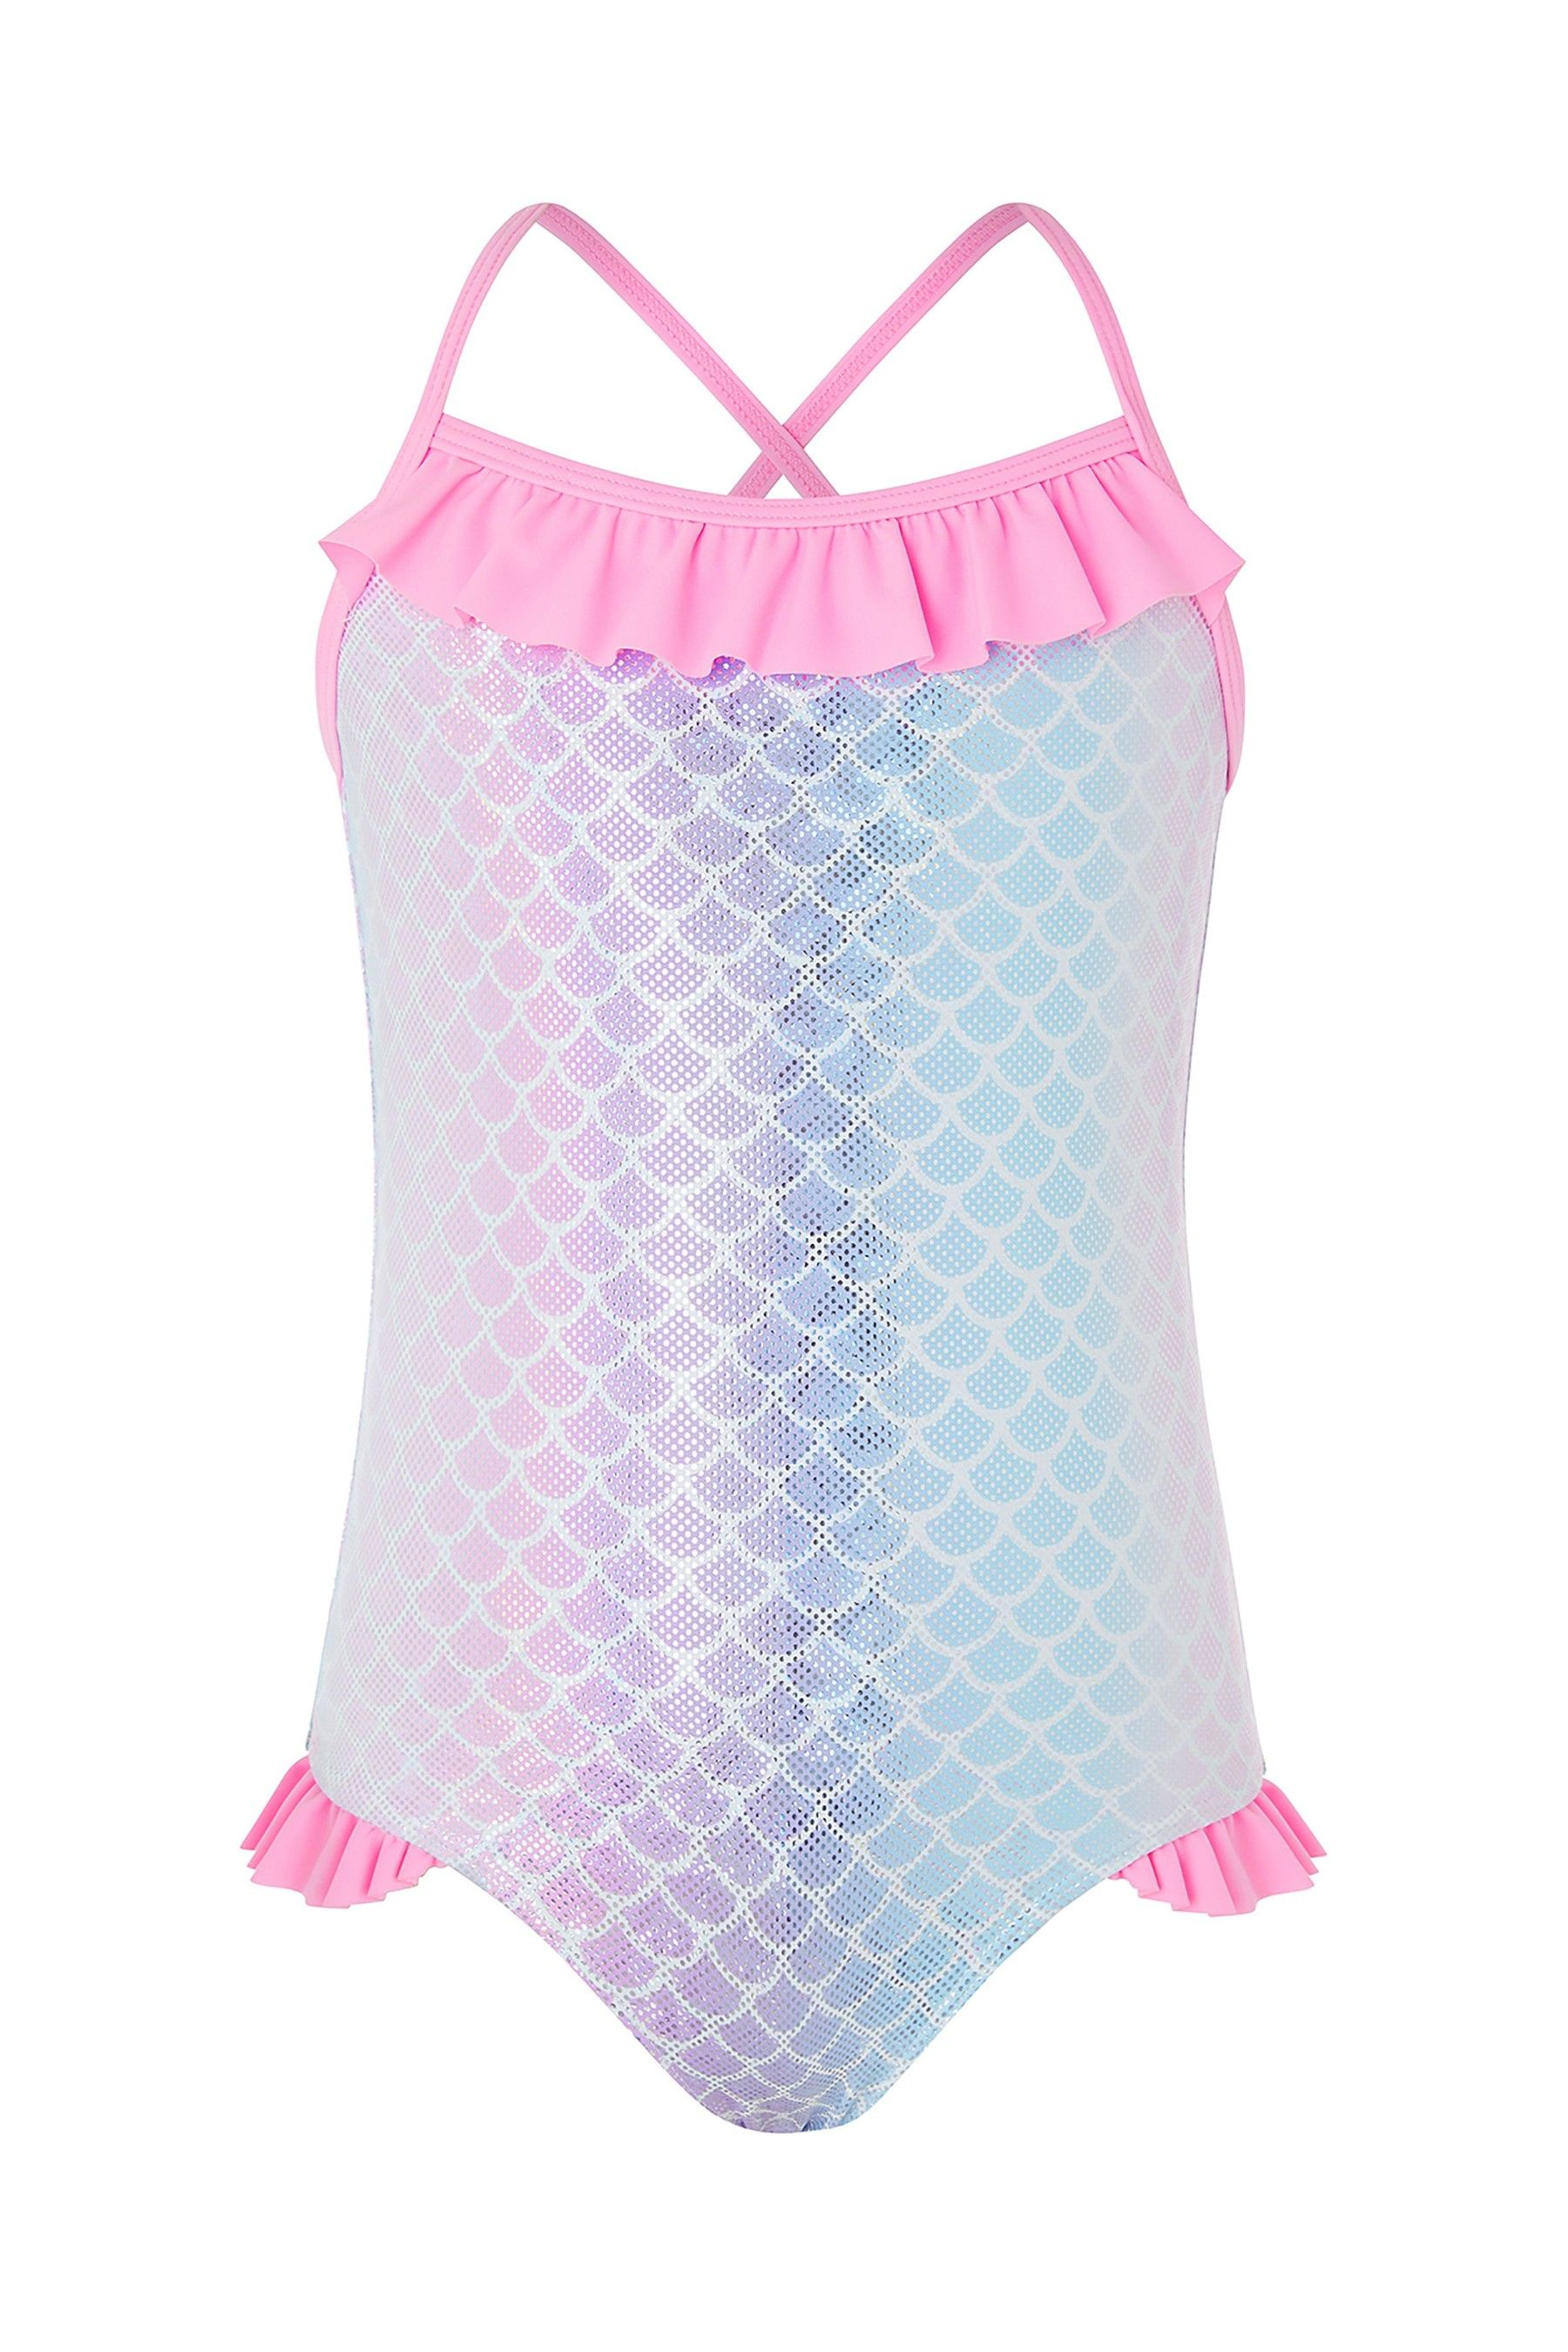 1feb0b695d6 Girls Angels by Accessorize Metalic Ombre Mermaid Swimsuit ...